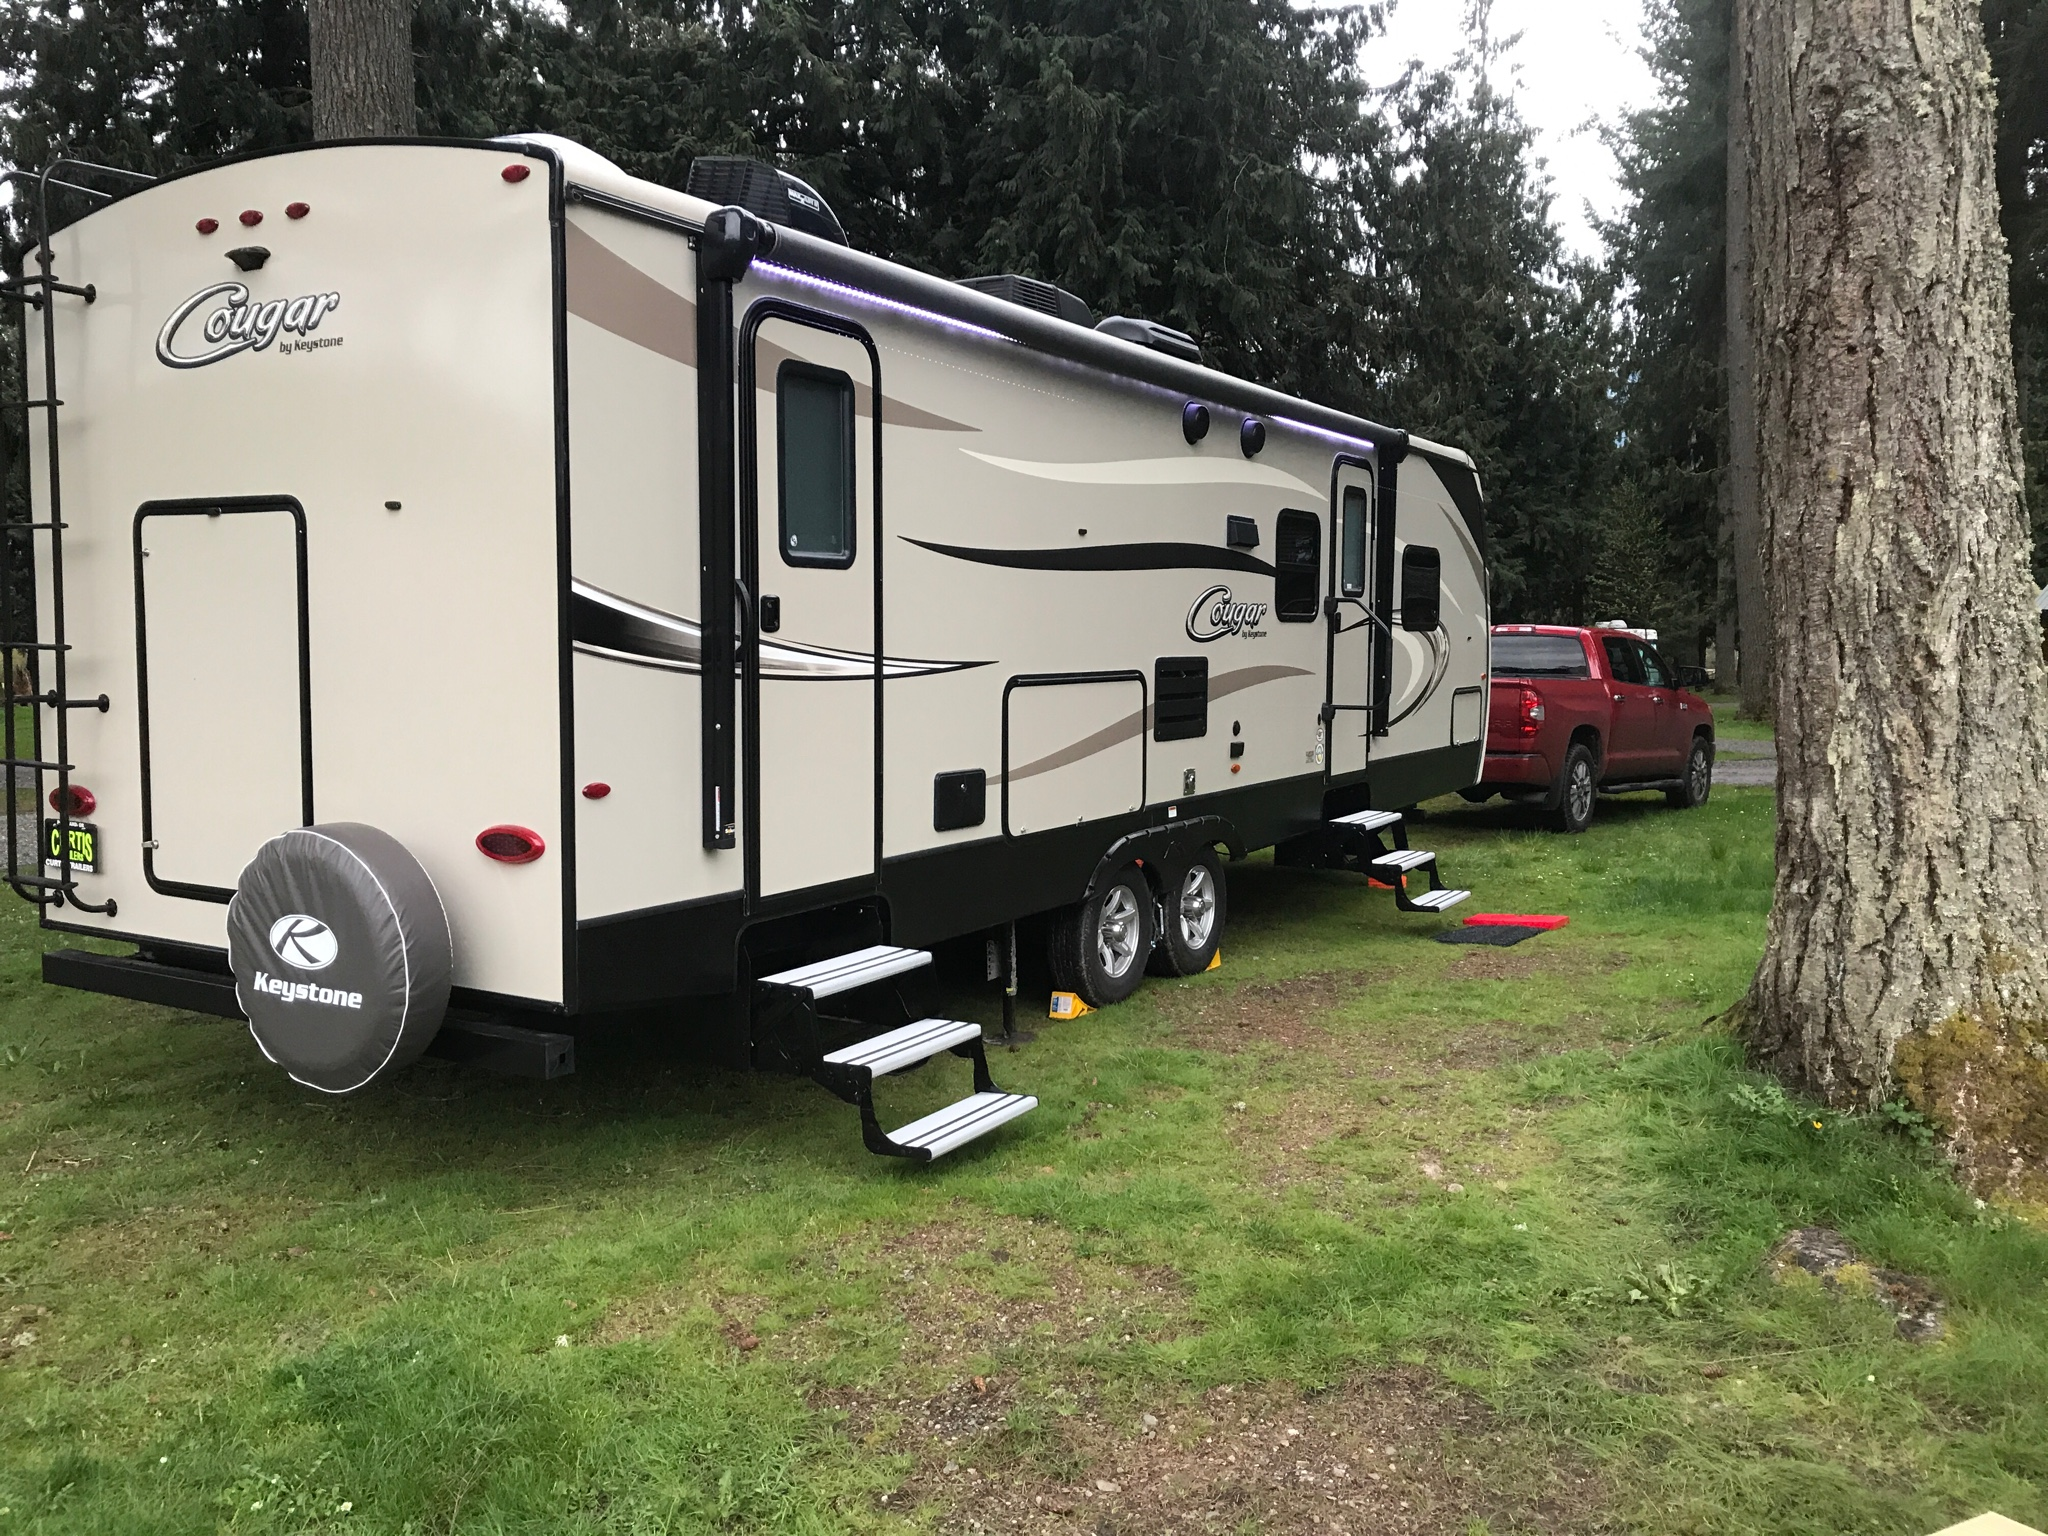 New Auto Leveling System [Archive] - Keystone RV Forums